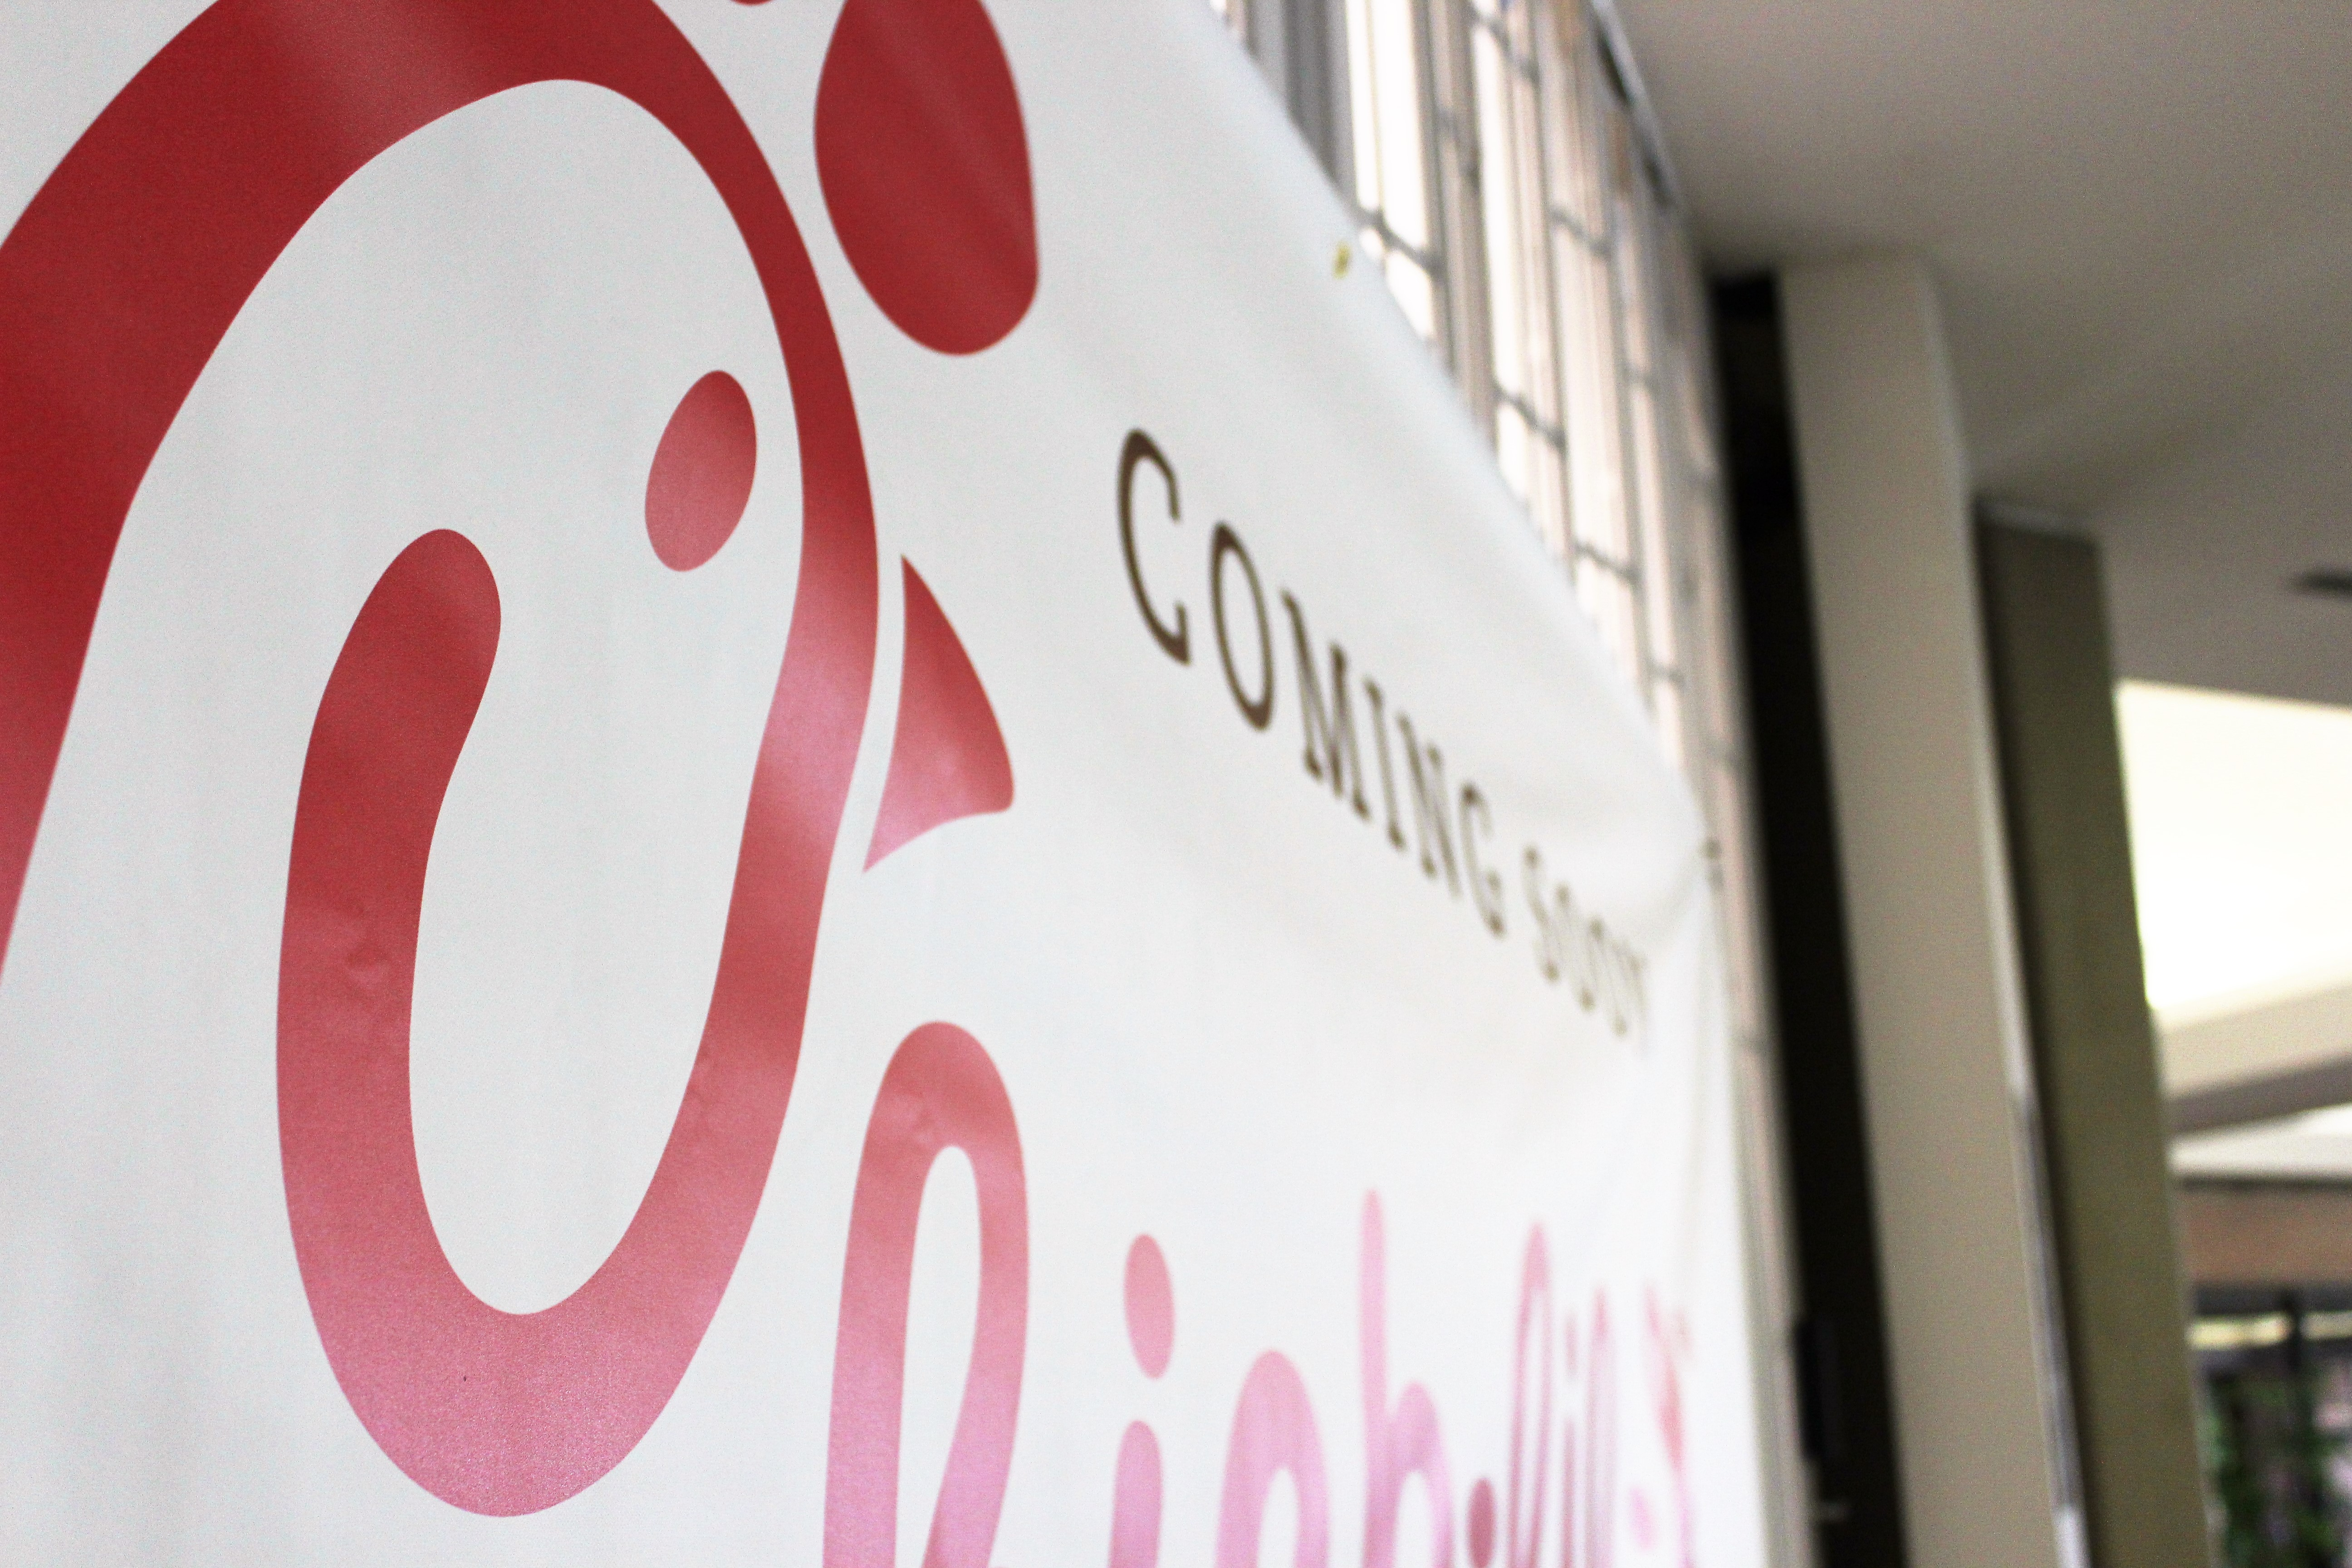 Chick-Fil-A prepares to open its doors soon in the Gaylord University Center. Photo by Jenny Rigney.